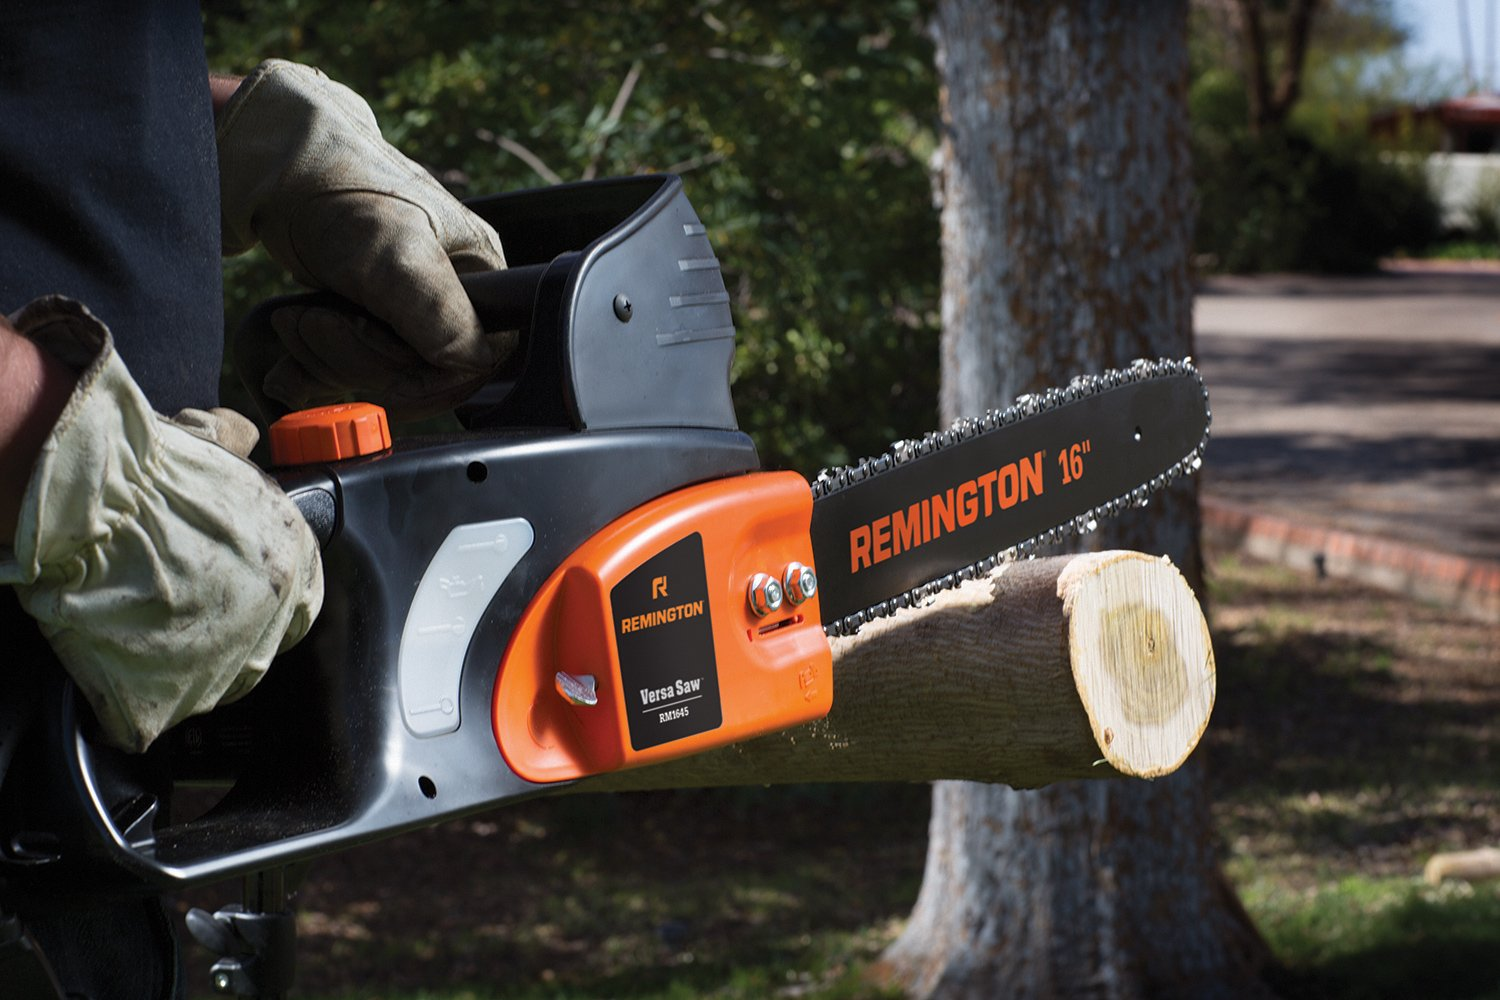 Amazon remington rm1645 versa saw 12 amp 16 inch electric amazon remington rm1645 versa saw 12 amp 16 inch electric chainsaw power chain saws garden outdoor greentooth Gallery